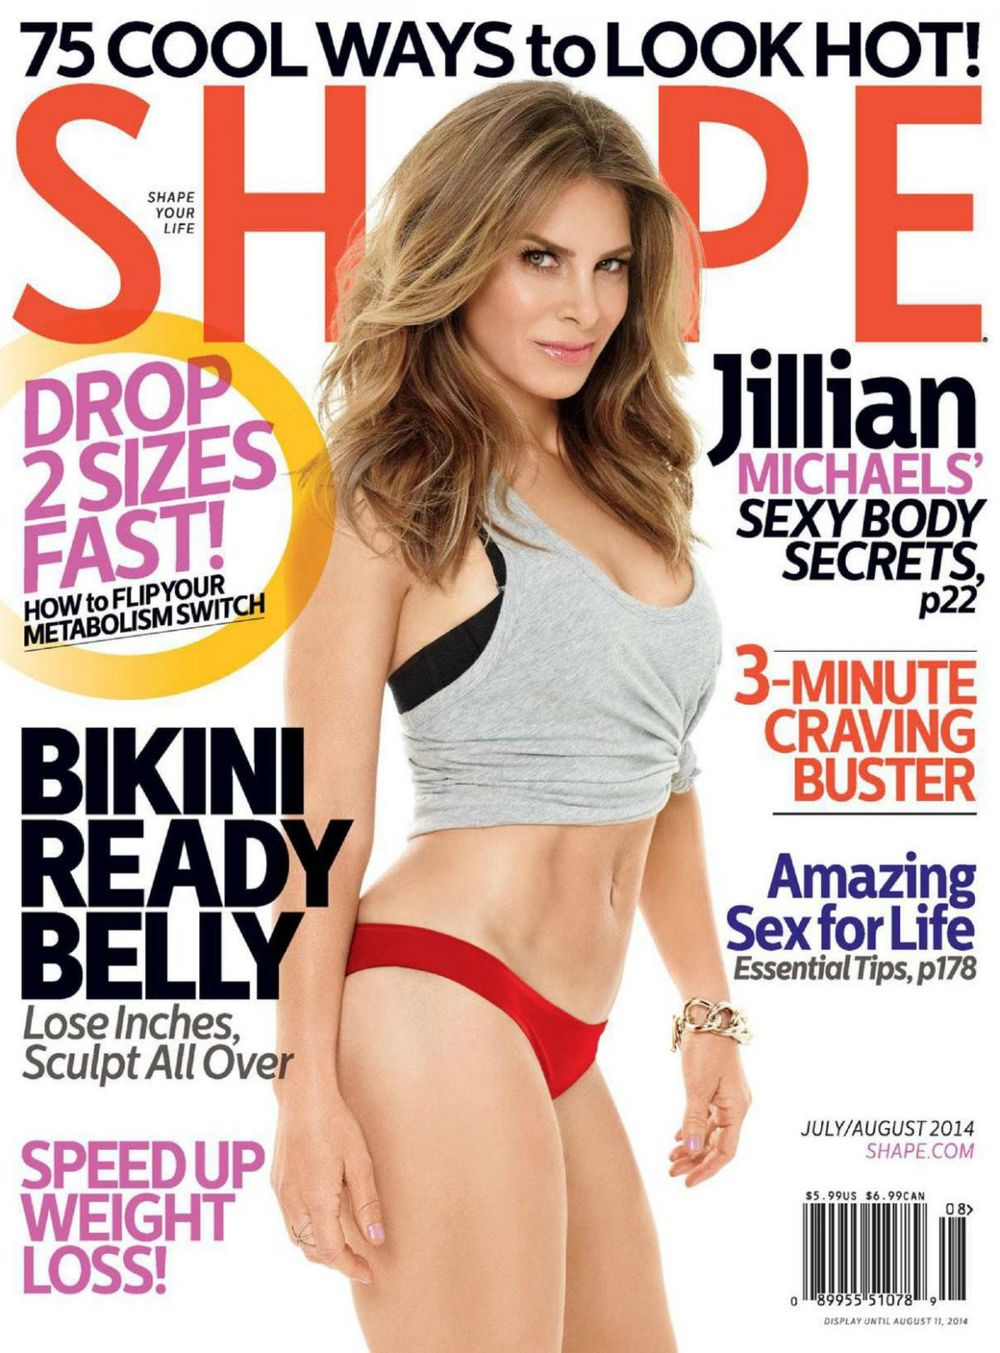 jillian-michaels-in-shape-magazine-july-august-2014-issue_1.jpg